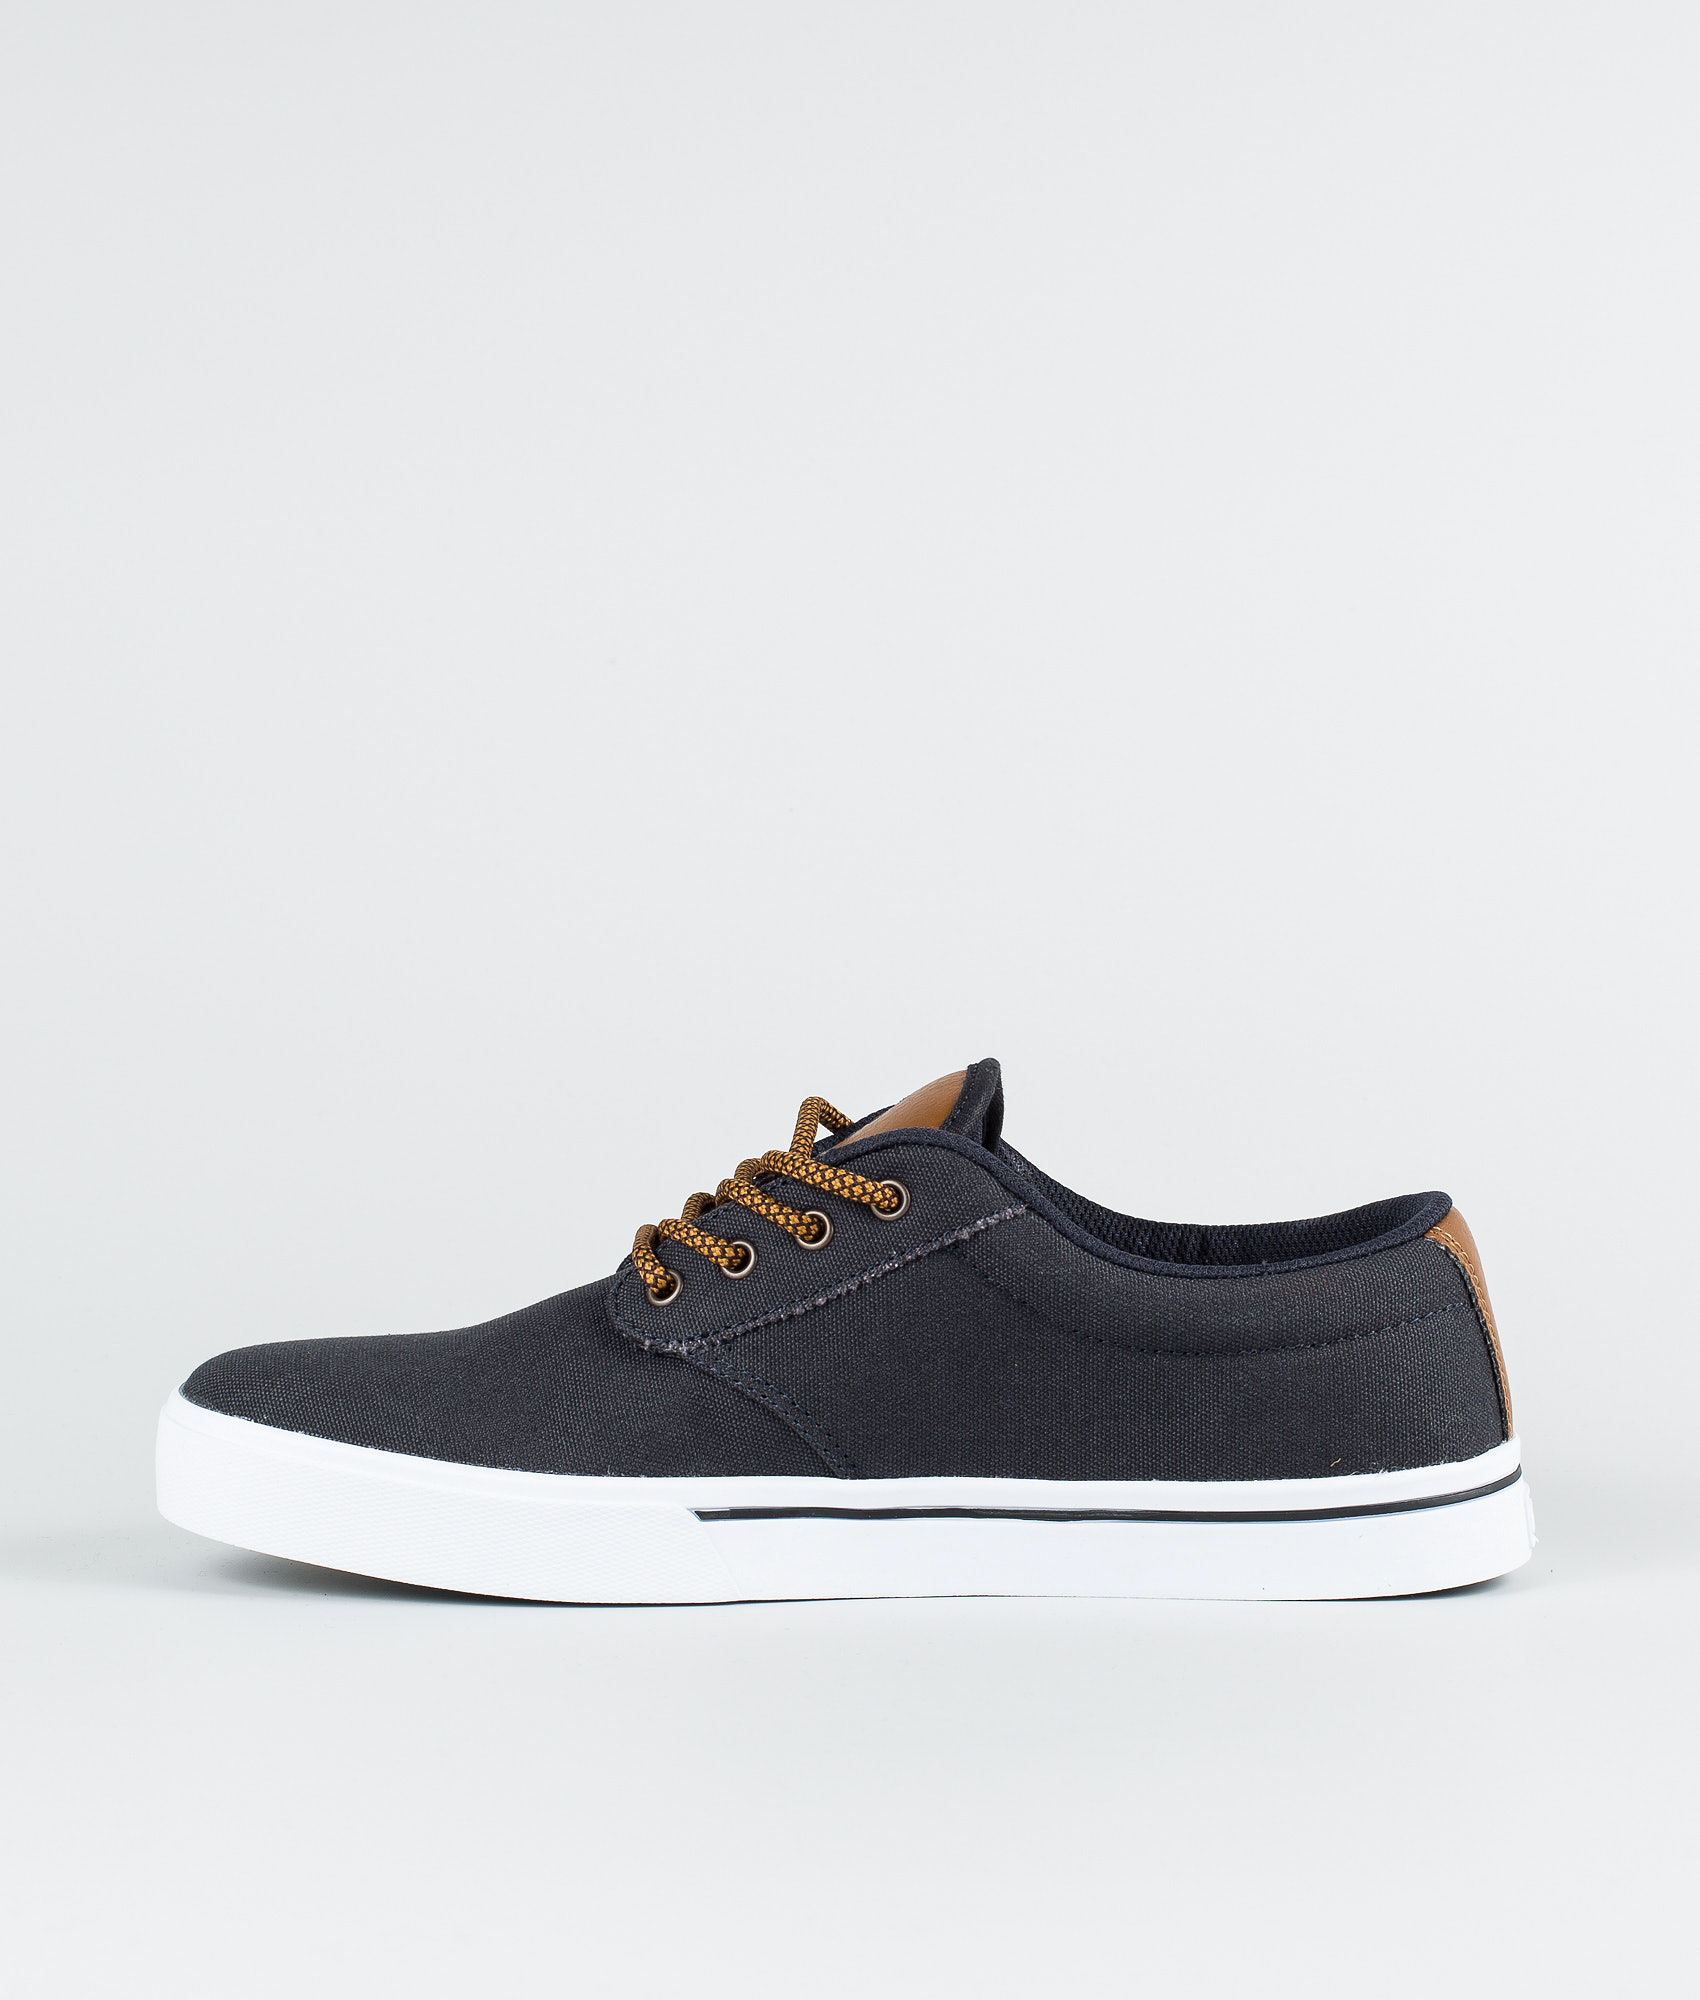 7e074c5ef2 Etnies Jameson 2 Eco Shoes Navy Tan White - Ridestore.com